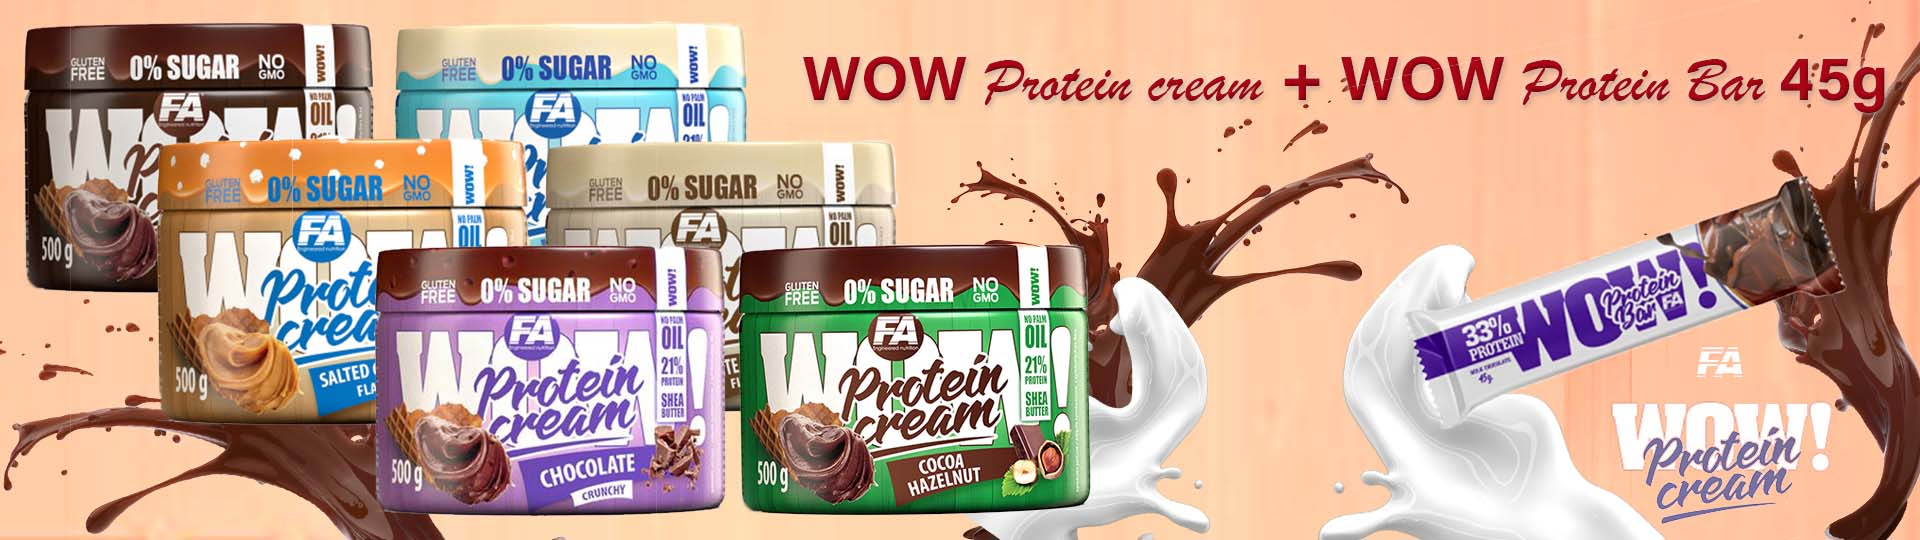 WOW Protein Creme